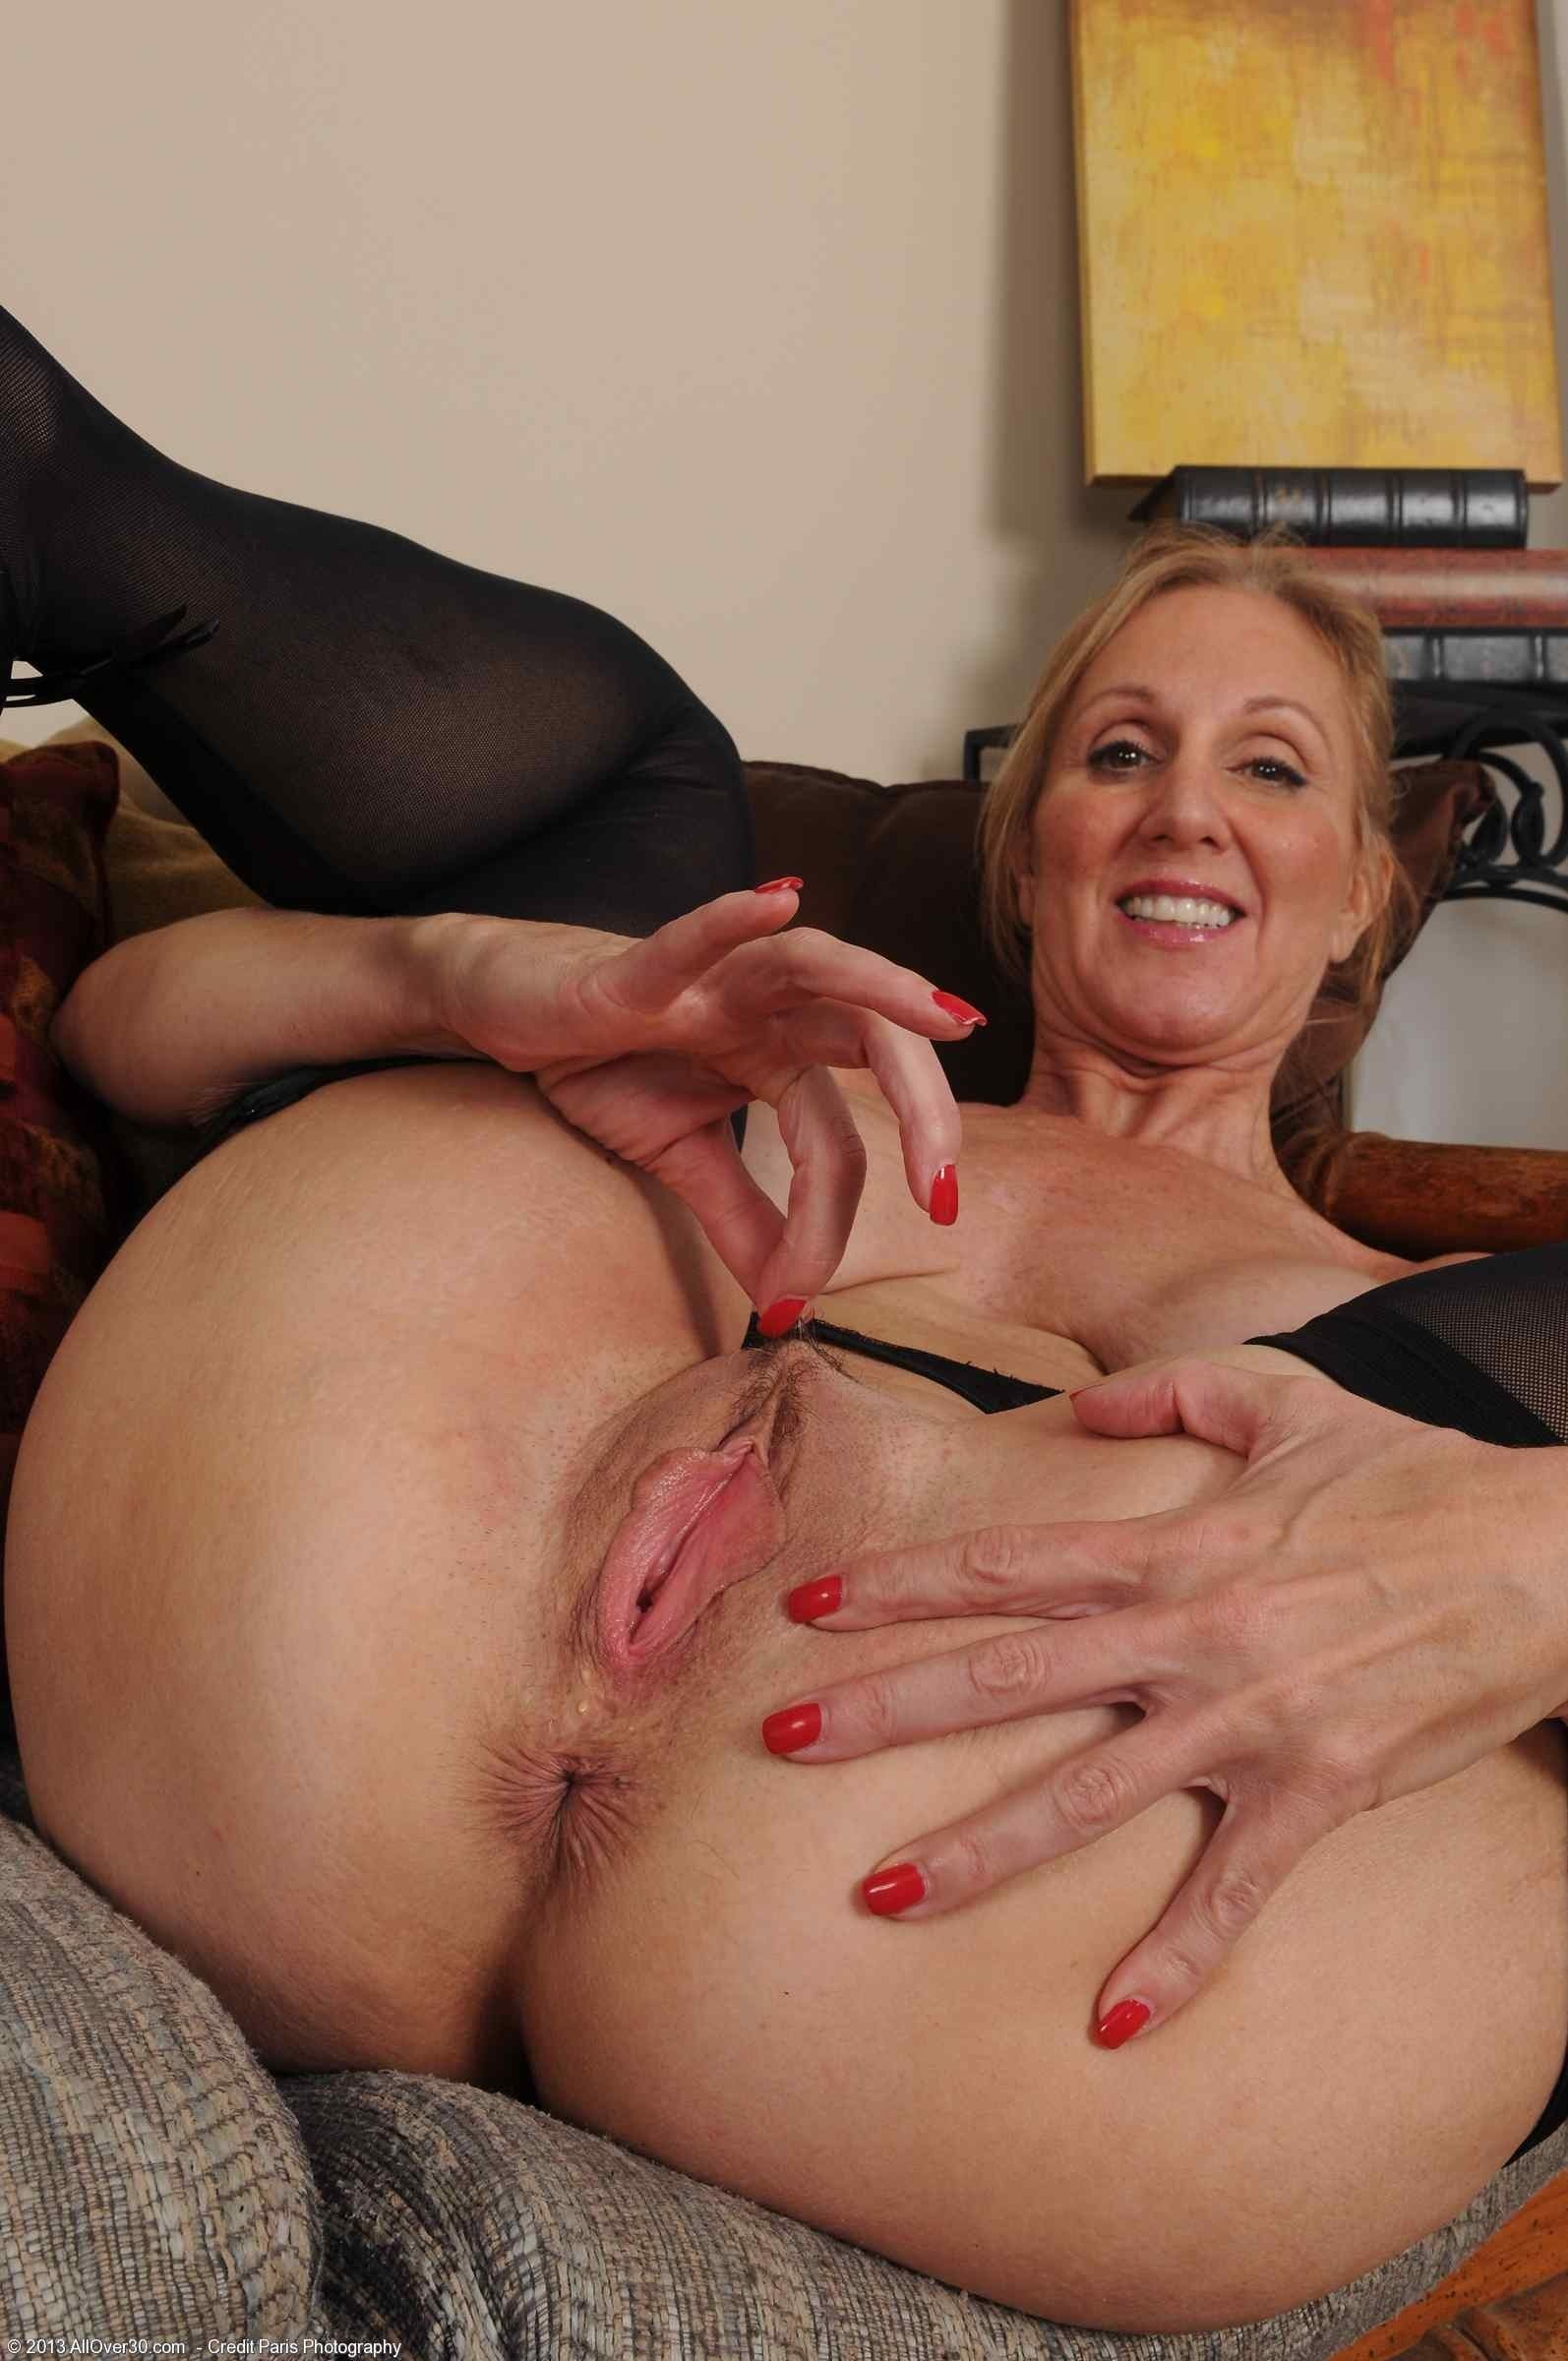 Mature sex images, milf porn galery, granny fuck clips, xxx cougar pussy